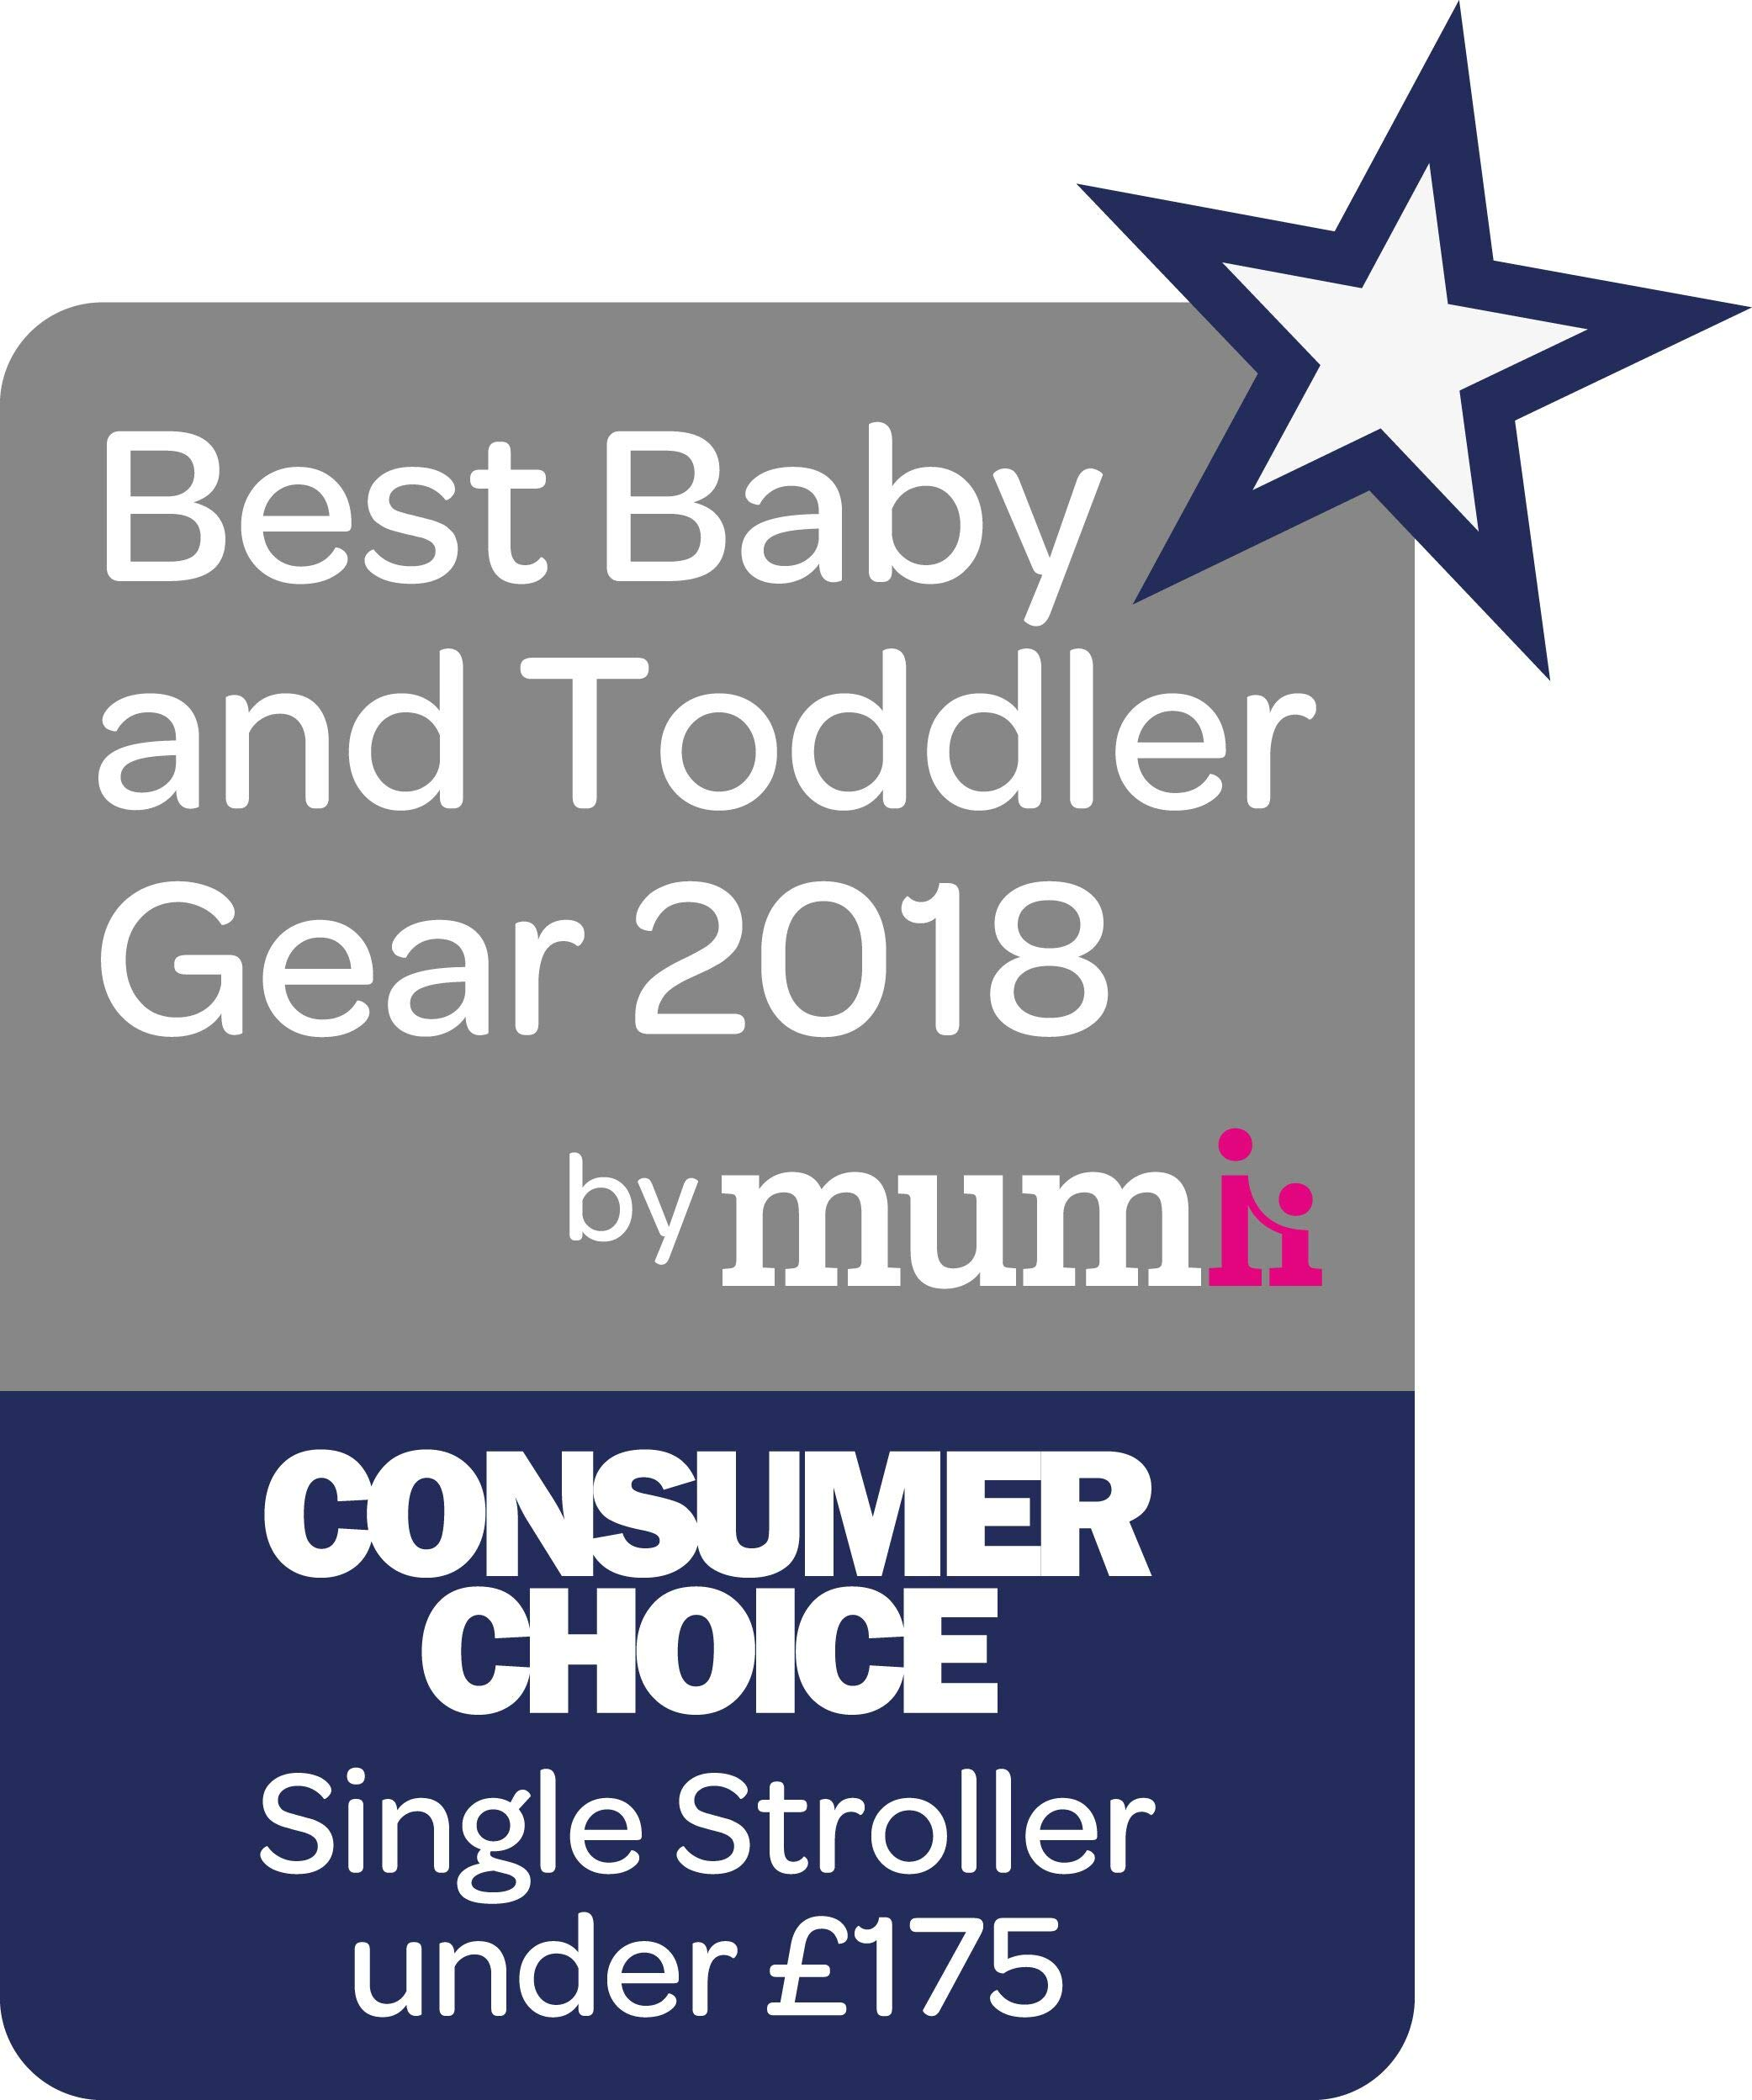 Ickle Bubba Baby Discovery Max Stroller| Lightweight Stroller Pushchair | Compact Fold Technology for Easy Transport and Storage | UPF 50+ Extendable Hood | Black/Rose Gold Ickle Bubba ONE-HANDED 3 POSITION SEAT RECLINE: Baby stroller suitable from 6 months to 22kg. 4 years old; features luxury soft quilted seat liner, footmuff, cupholder, and rain cover UPF 50+ RATED ADJUSTABLE HOOD: Includes a peekaboo window to keep an eye on the little one; extendable hood-UPF rated-to protect against the sun's harmful rays and inclement weather LIGHTWEIGHT DESIGN WITH COMPACT FOLD TECHNOLOGY: Easy to transport, aluminum frame is lightweight and portable-weighs only 7kg; folds compact for storage in small places; carry strap and leather shoulder pad included 13